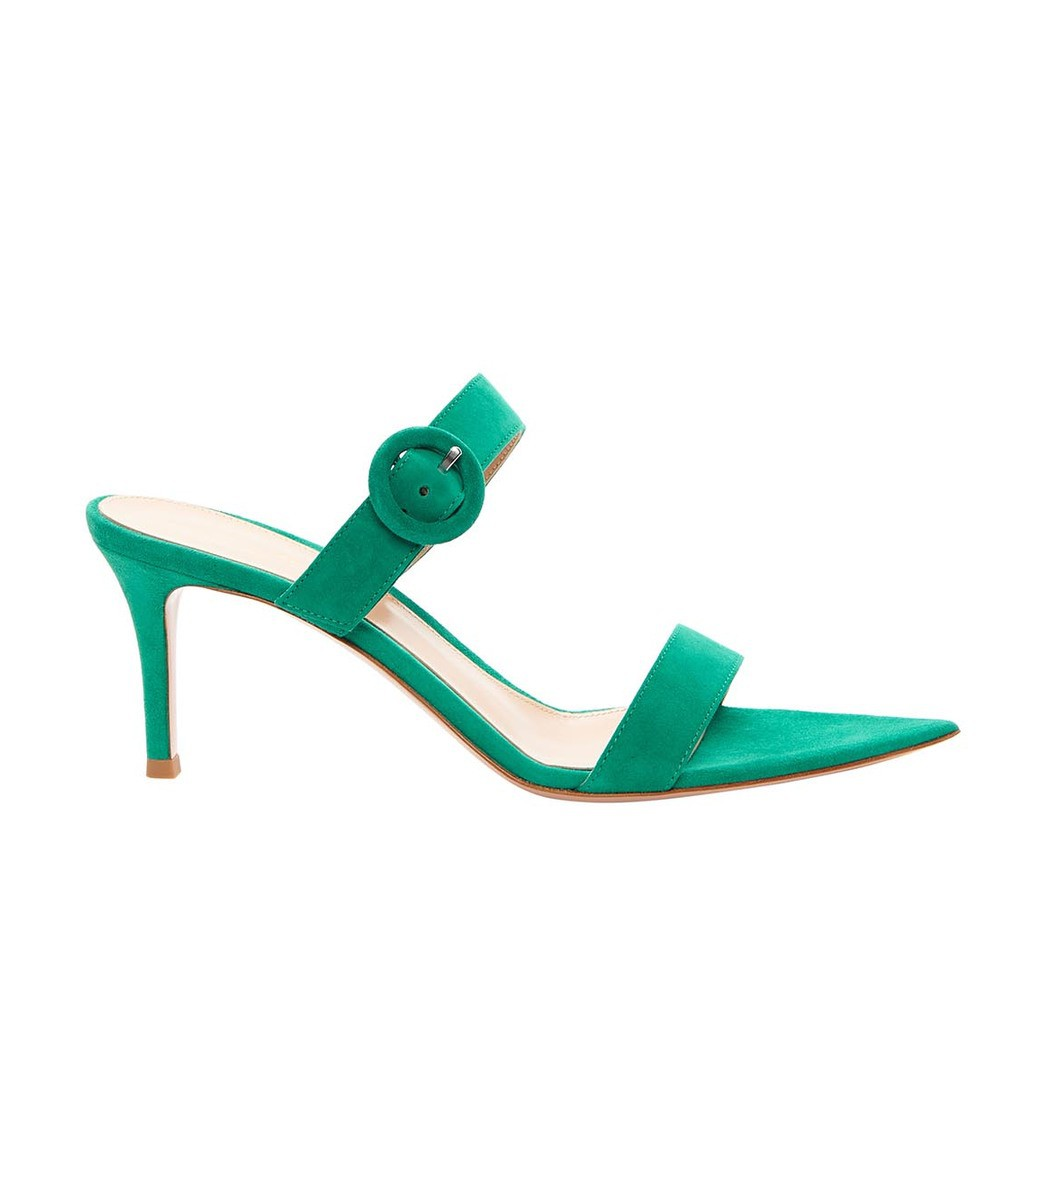 GIANVITO ROSSI Green Suede Slide Buckle Sandal